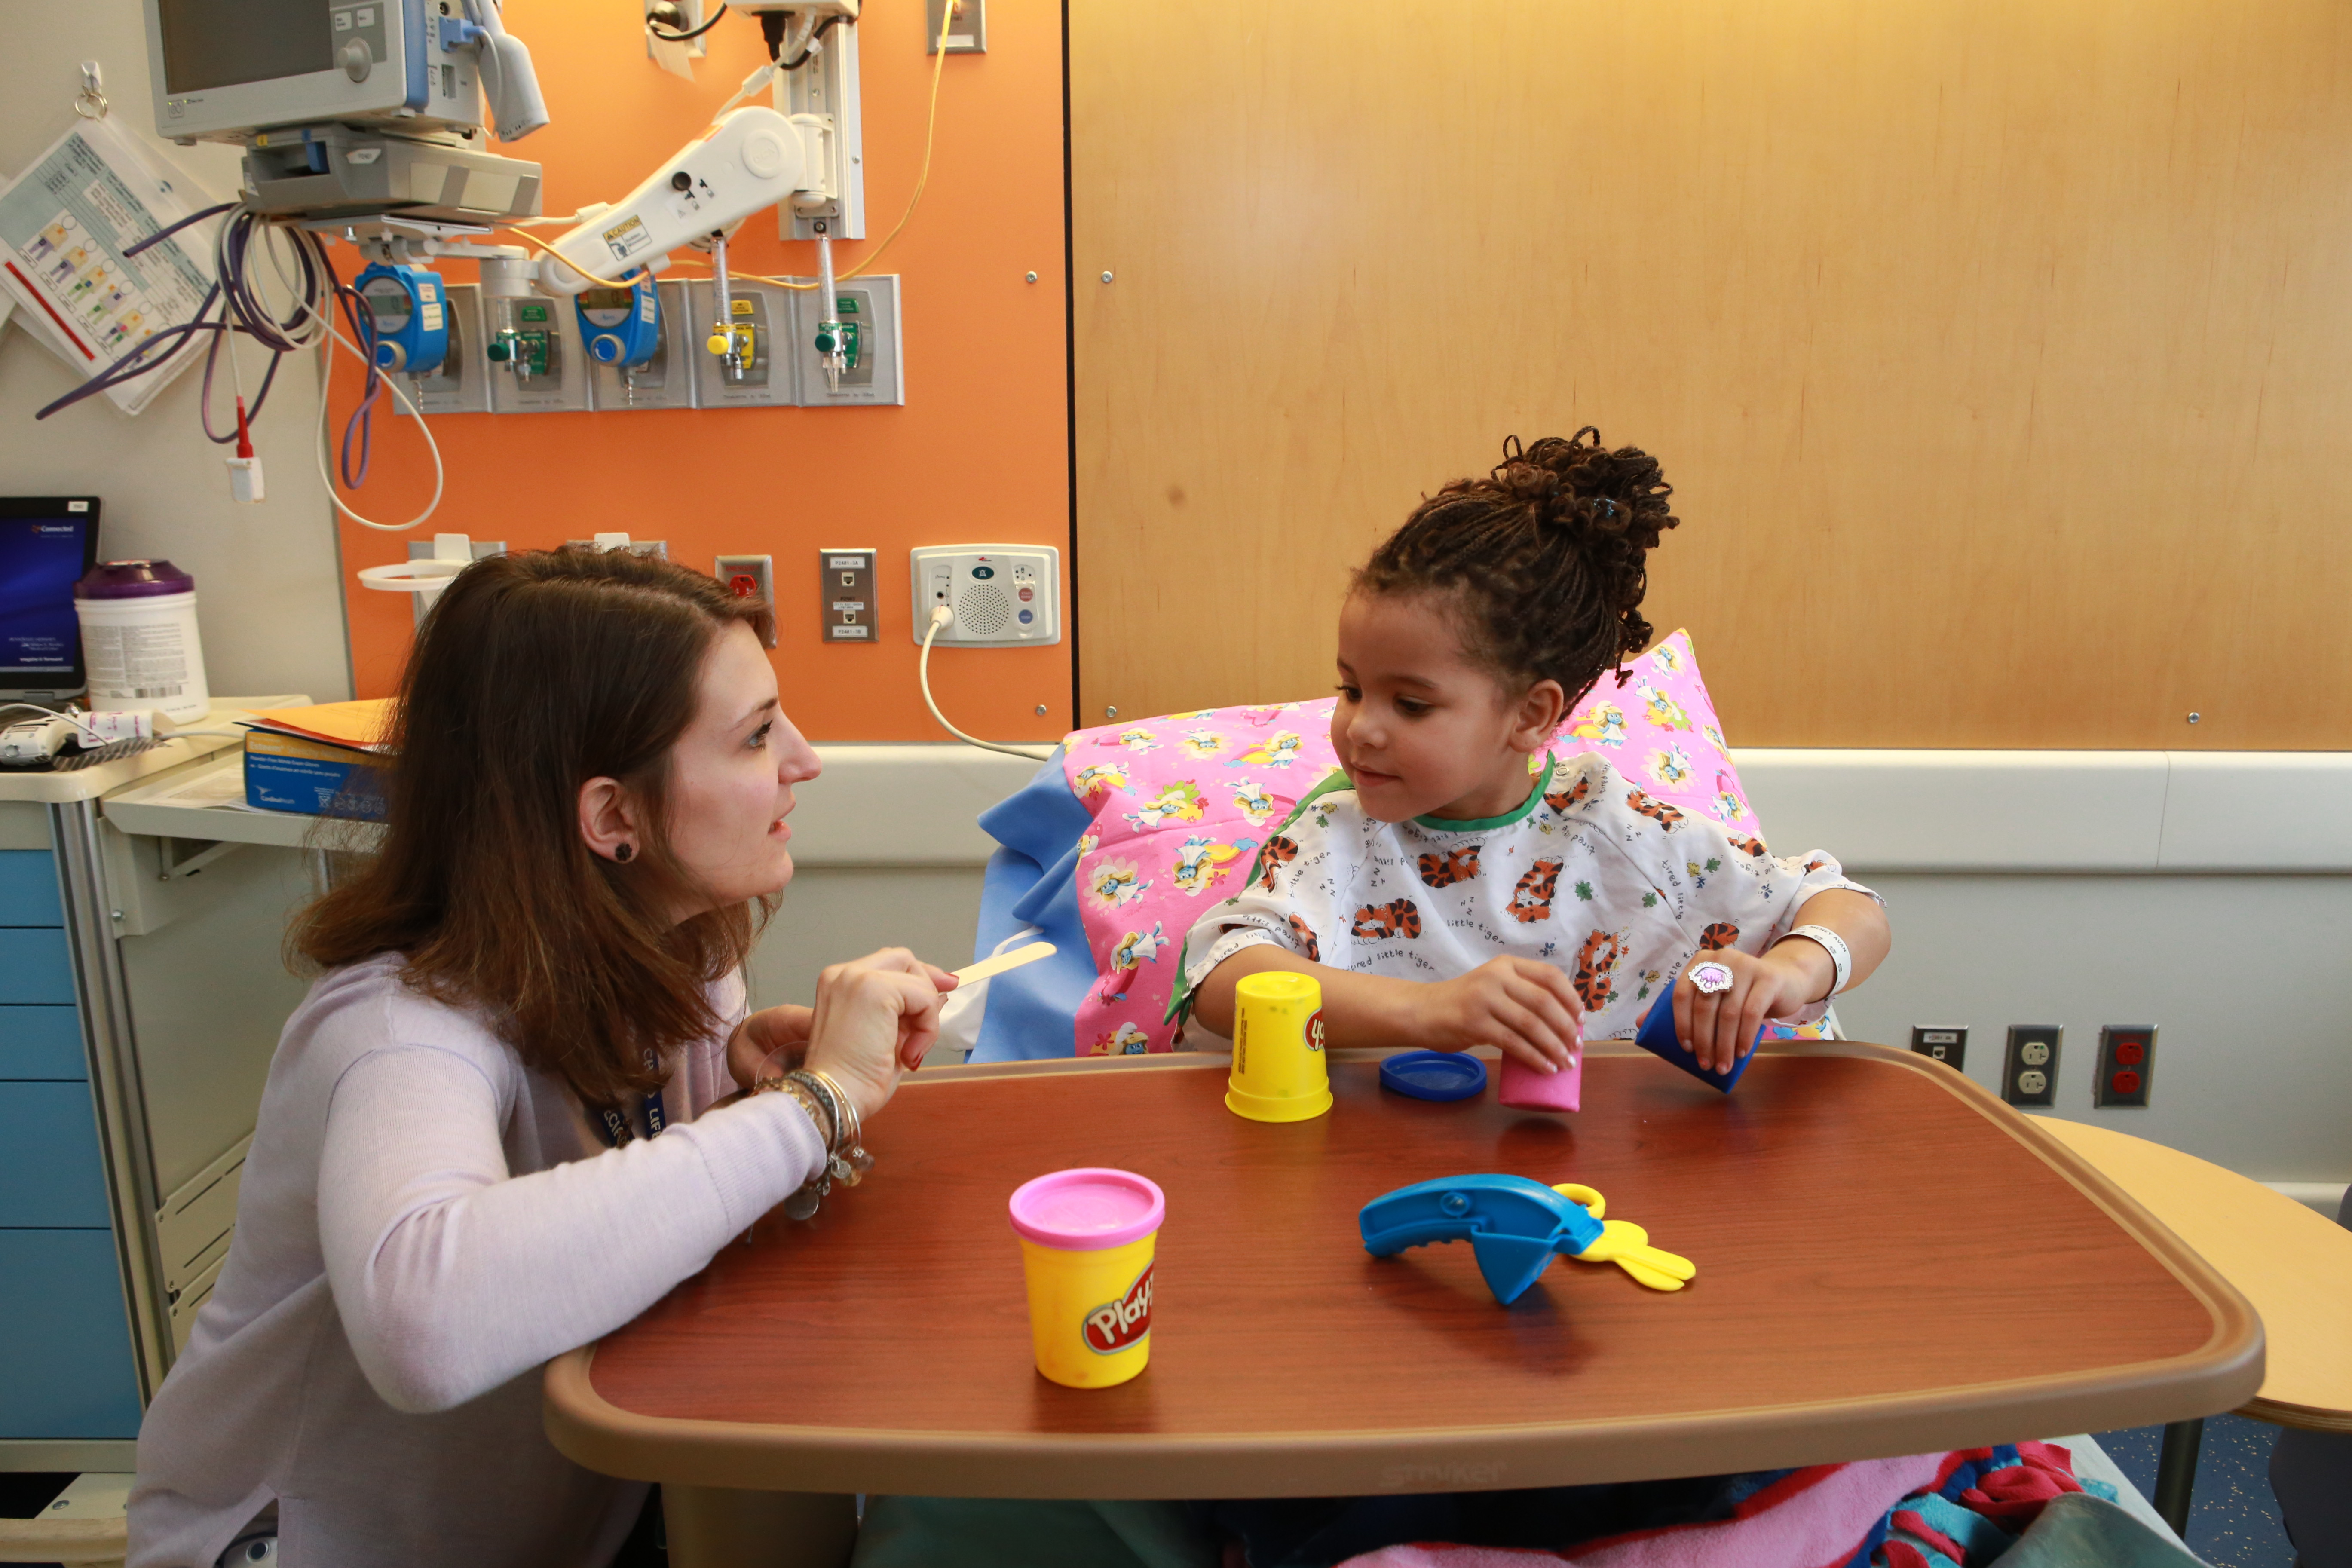 Kate Denlinger, certified child life specialist, shows Meney Richards, 5, how medicine cups and tongue depressors can be used to play with Playdoh.  Meney brought her Frozen-themed blanket for her surgery visit.